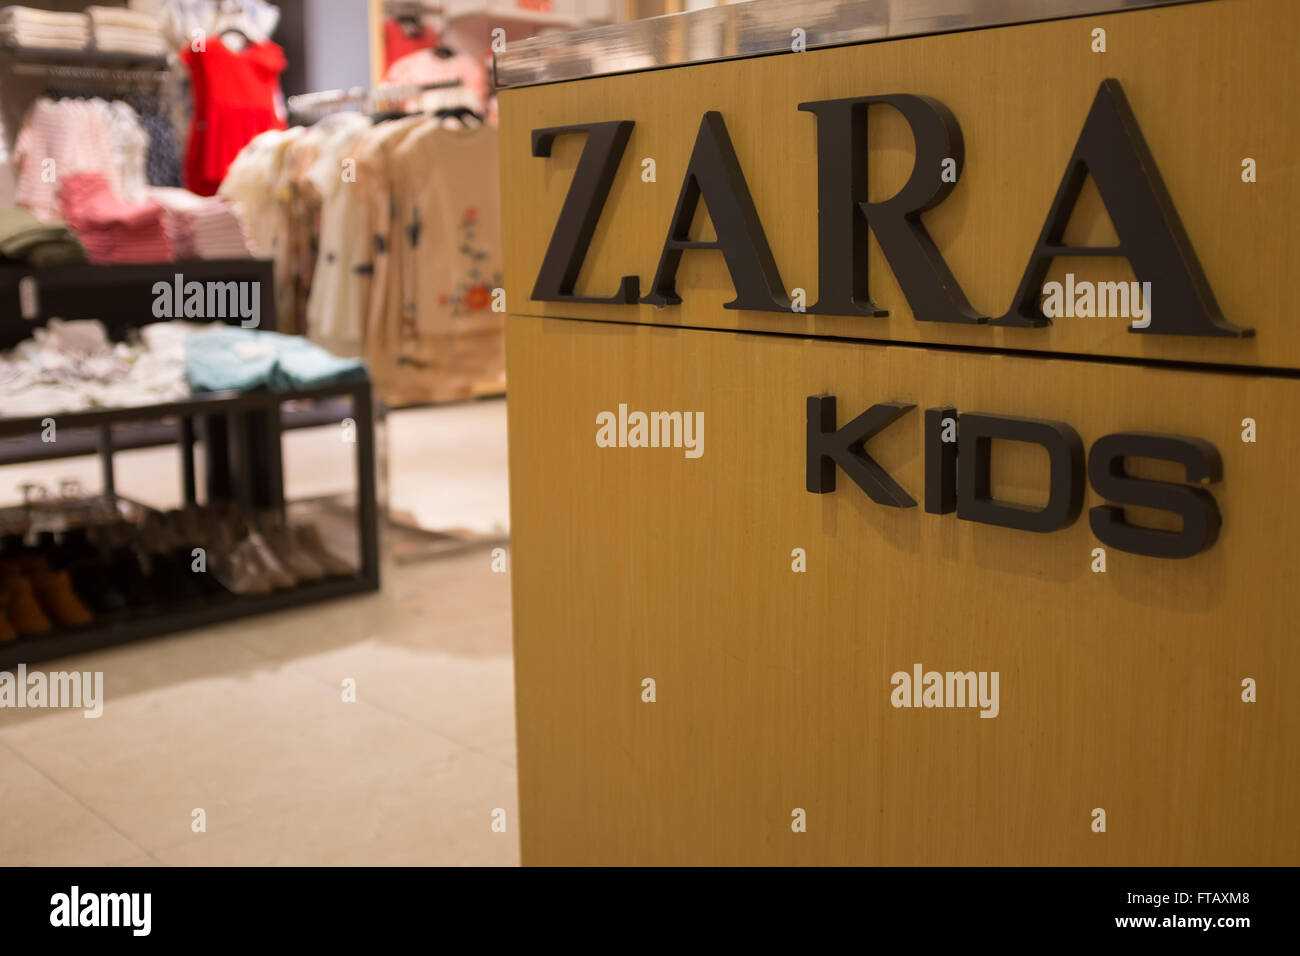 spanish retailer zara clothing store stock photos spanish retailer zara clothing store stock. Black Bedroom Furniture Sets. Home Design Ideas